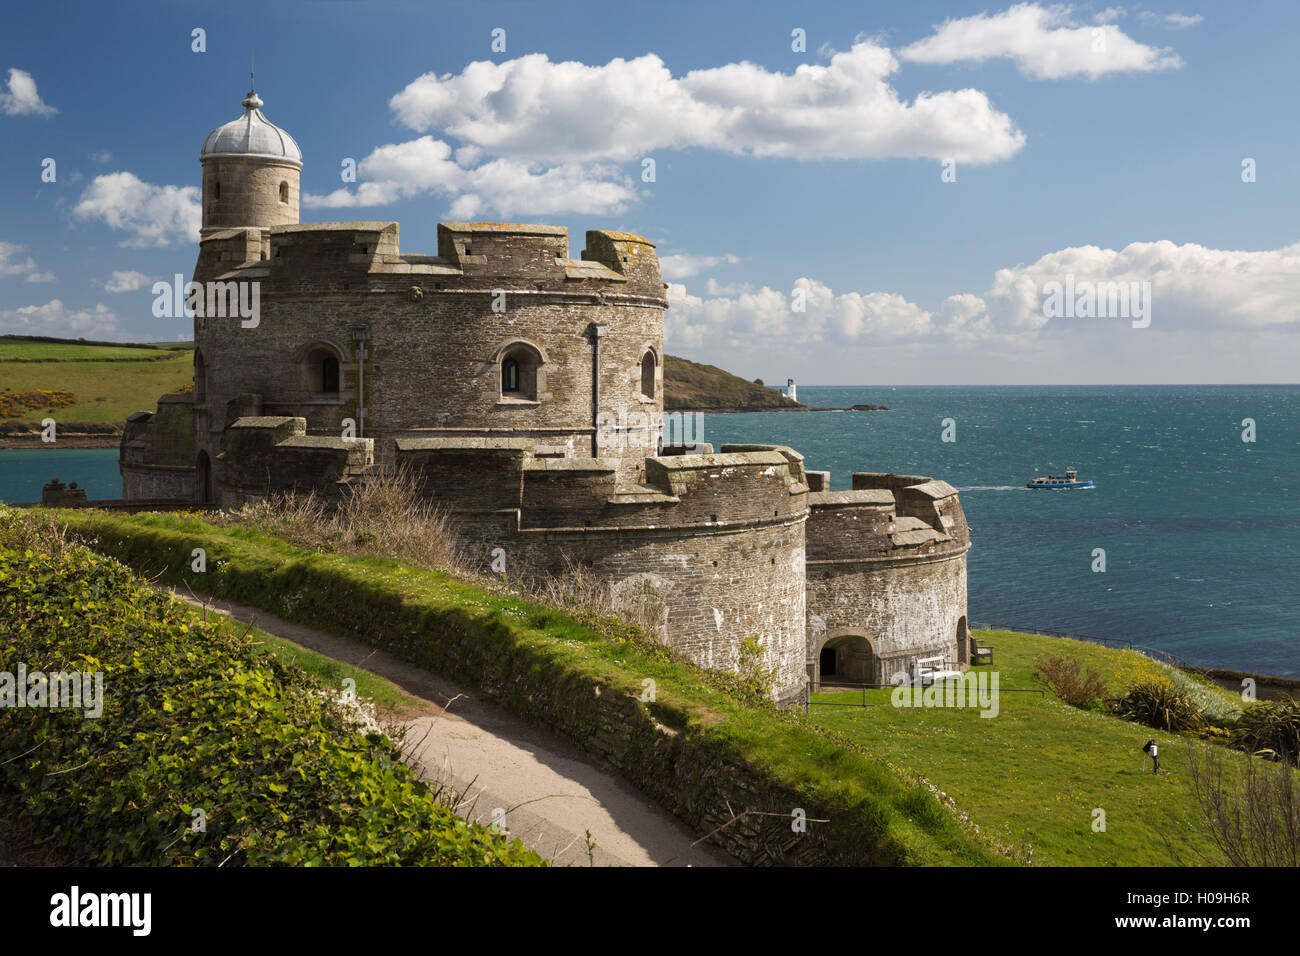 St. Mawes Castle and coastline, St. Mawes, Cornwall, England, United Kingdom, Europe - Stock Image